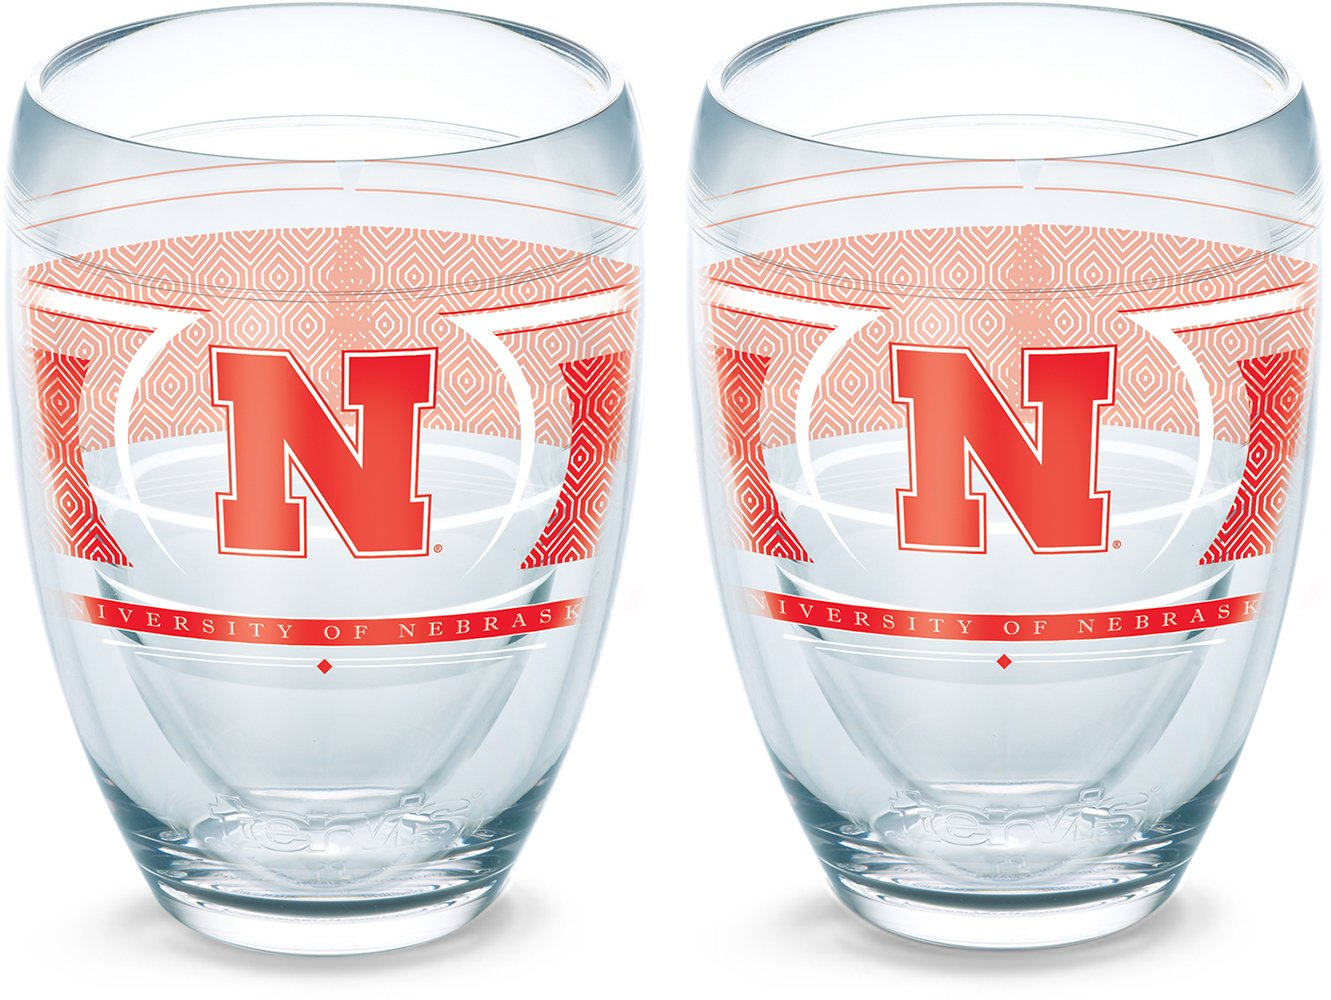 Tervis 1230235 Nebraska Cornhuskers Reserve Insulated Tumbler with Wrap 2 Pack Boxed 9oz Stemless Wine Glass Clear